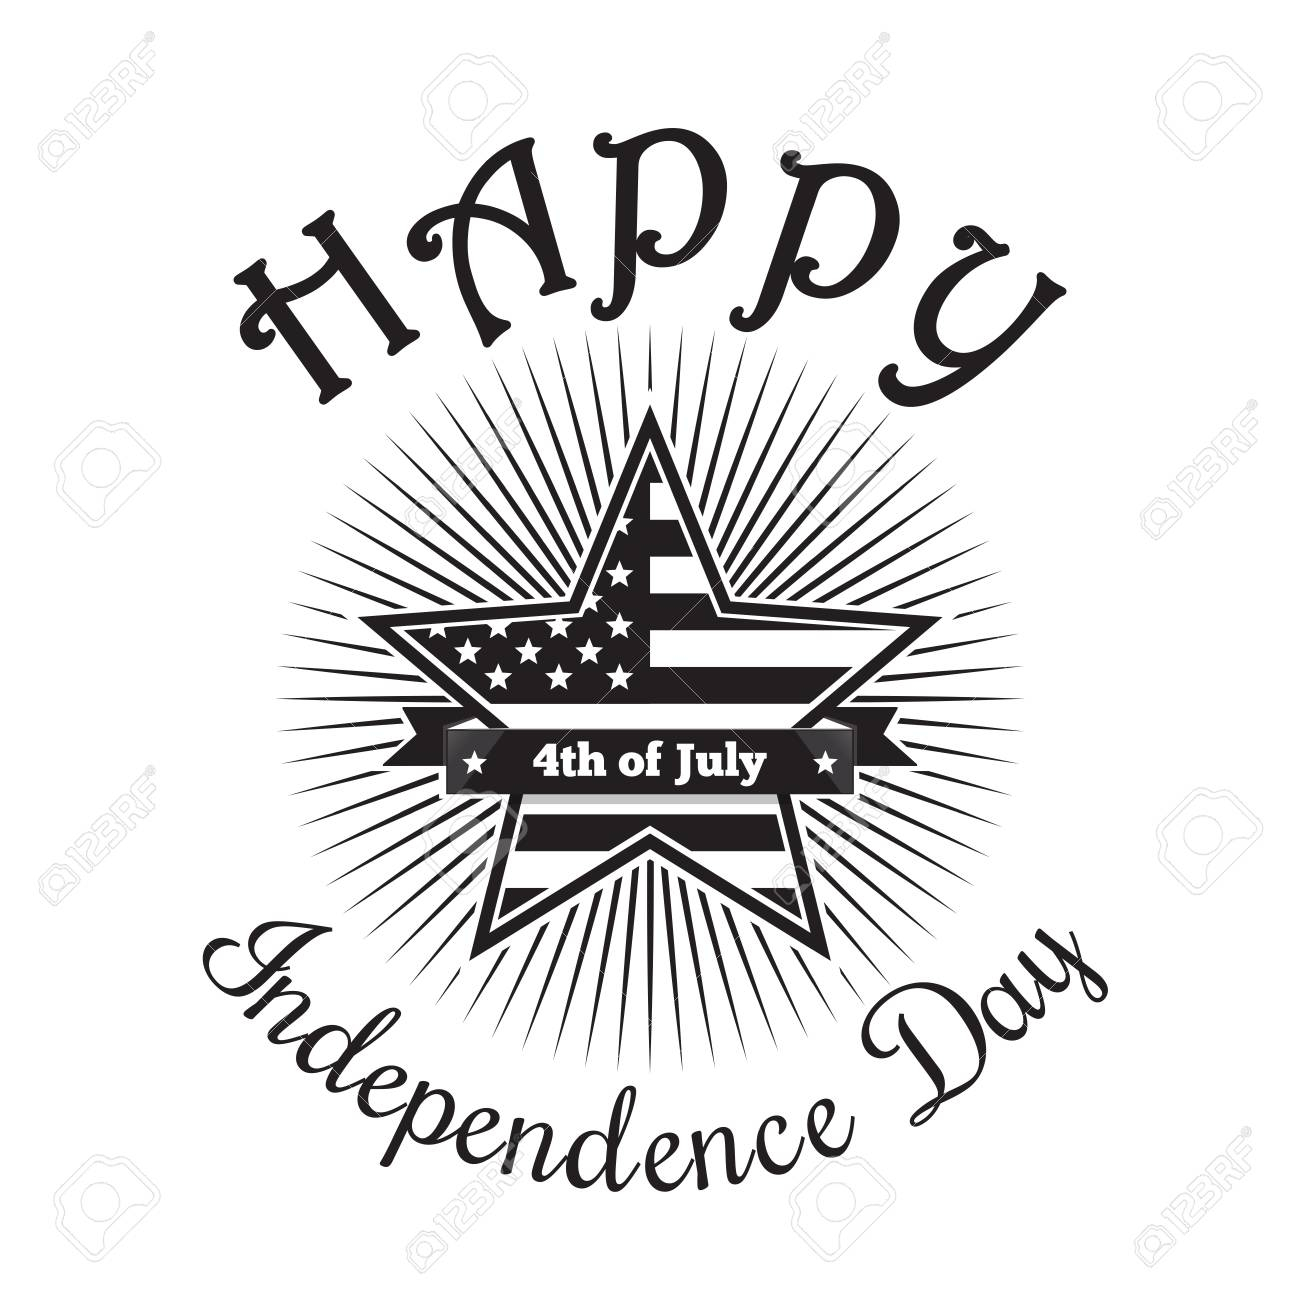 Independence day clipart black and white graphic black and white download Independence Day Clipart Black And White to you – Free ... graphic black and white download